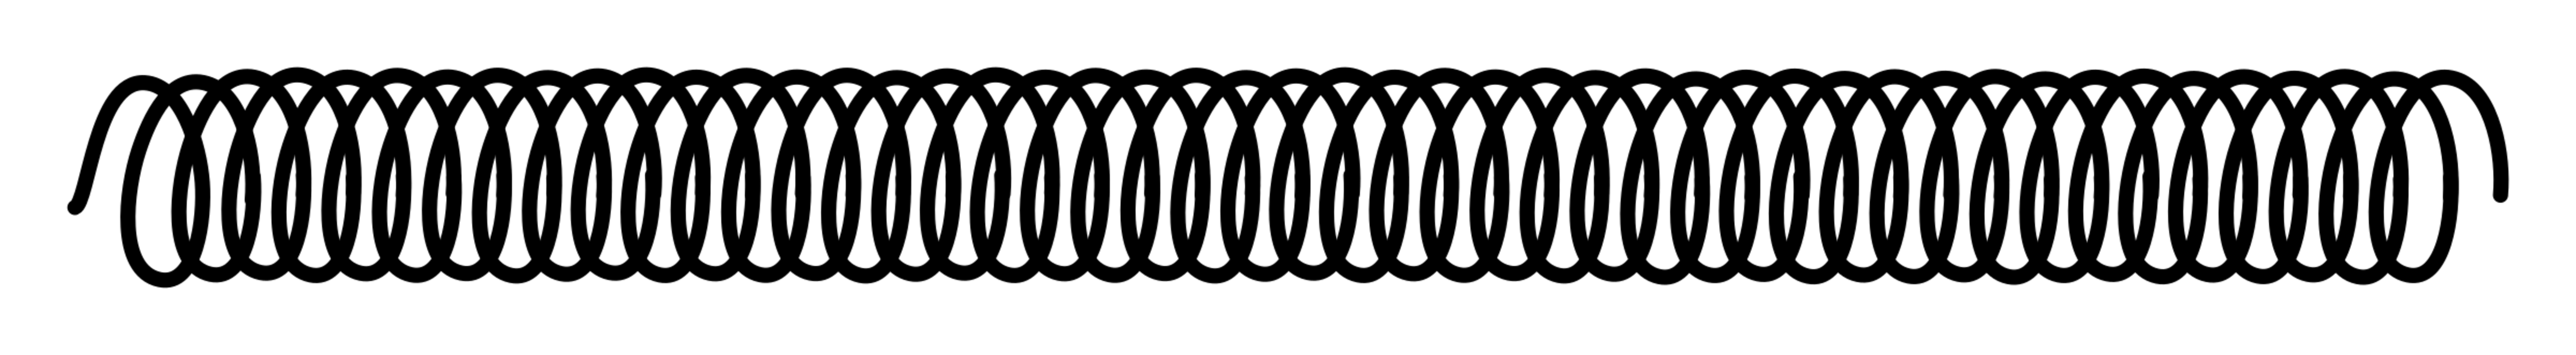 Line,Black And White,Wire PNG Clipart.